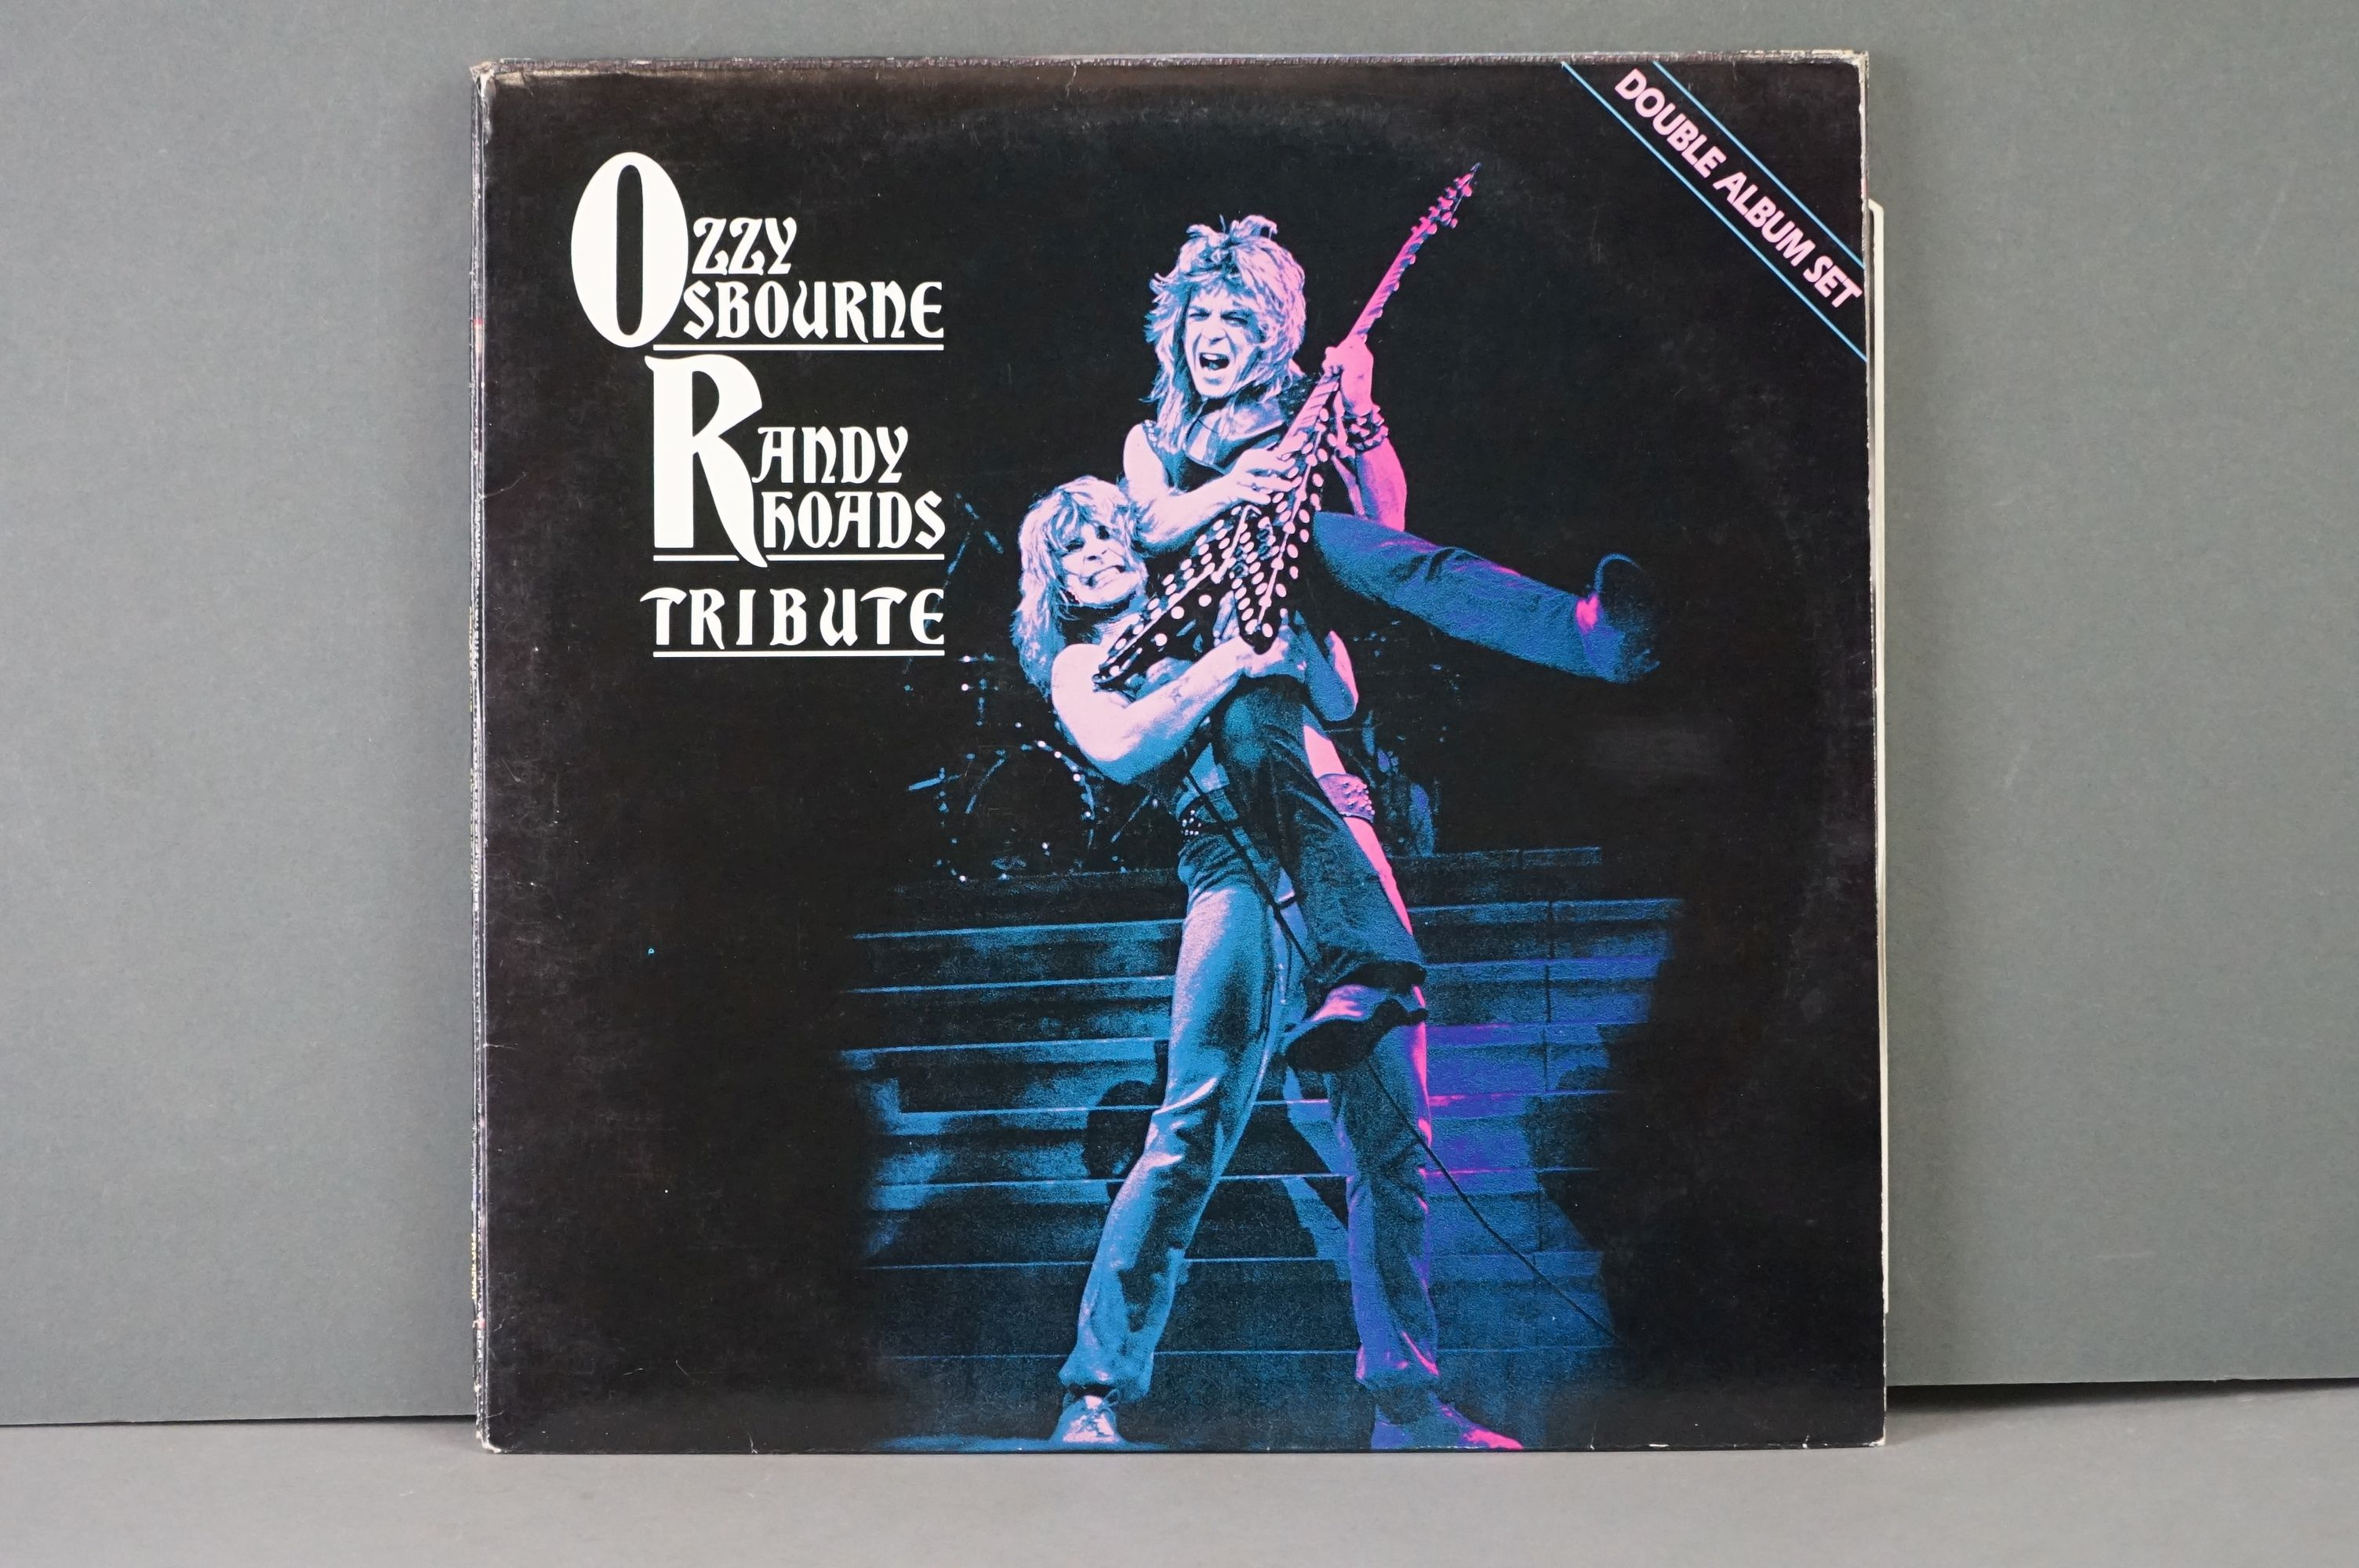 Vinyl - Six Ozzy Osbourne vinyl LP's to include The Ultimate Sin (Epic Records 26404), Live E.P. ( - Image 5 of 8